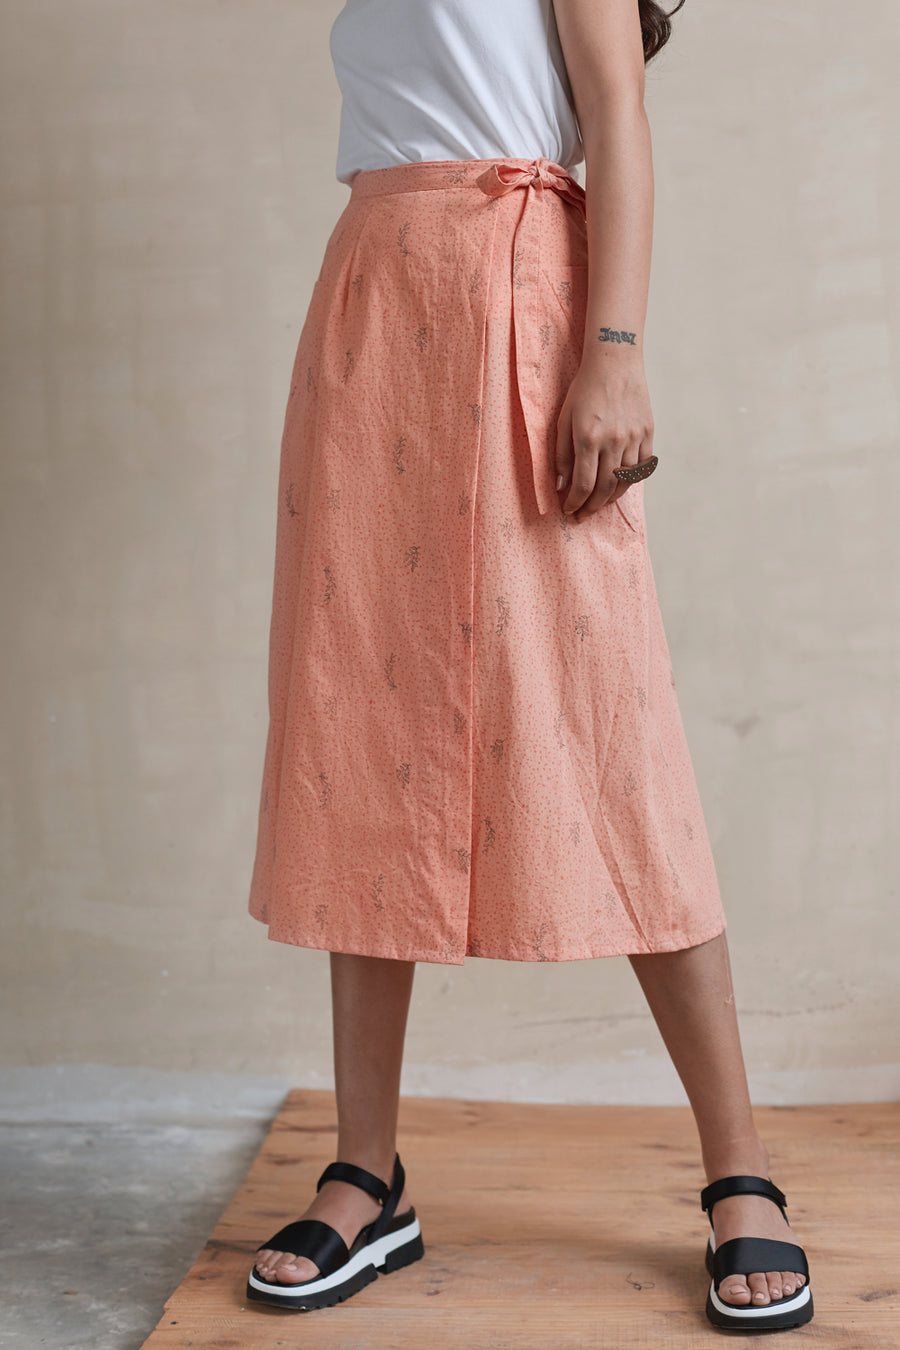 Wrapped in Peach Midi Skirt - Ethical made fashion - onlyethikal